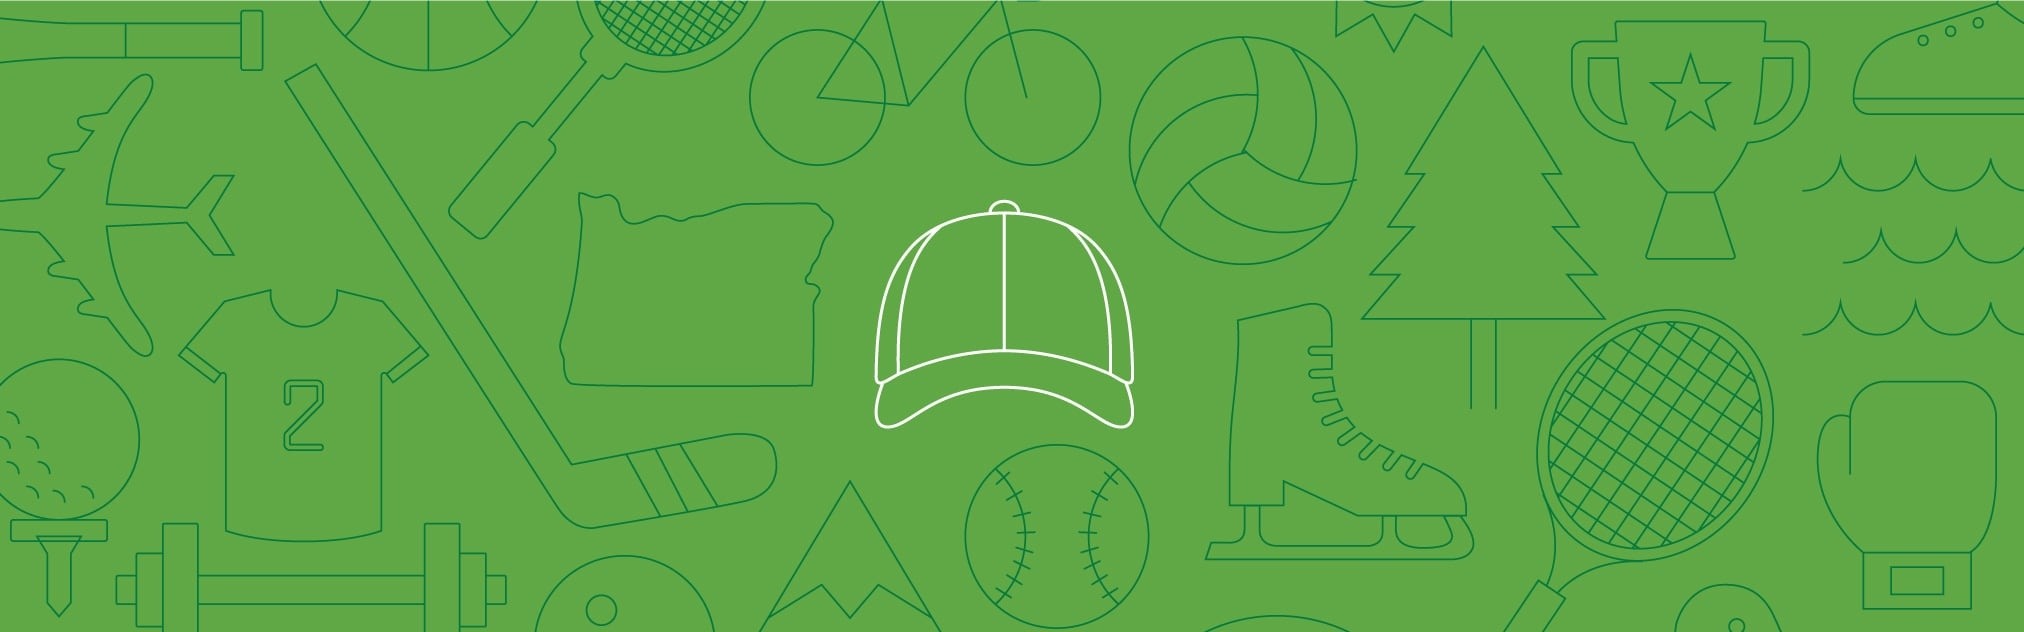 Line art of sports-related icons against green background